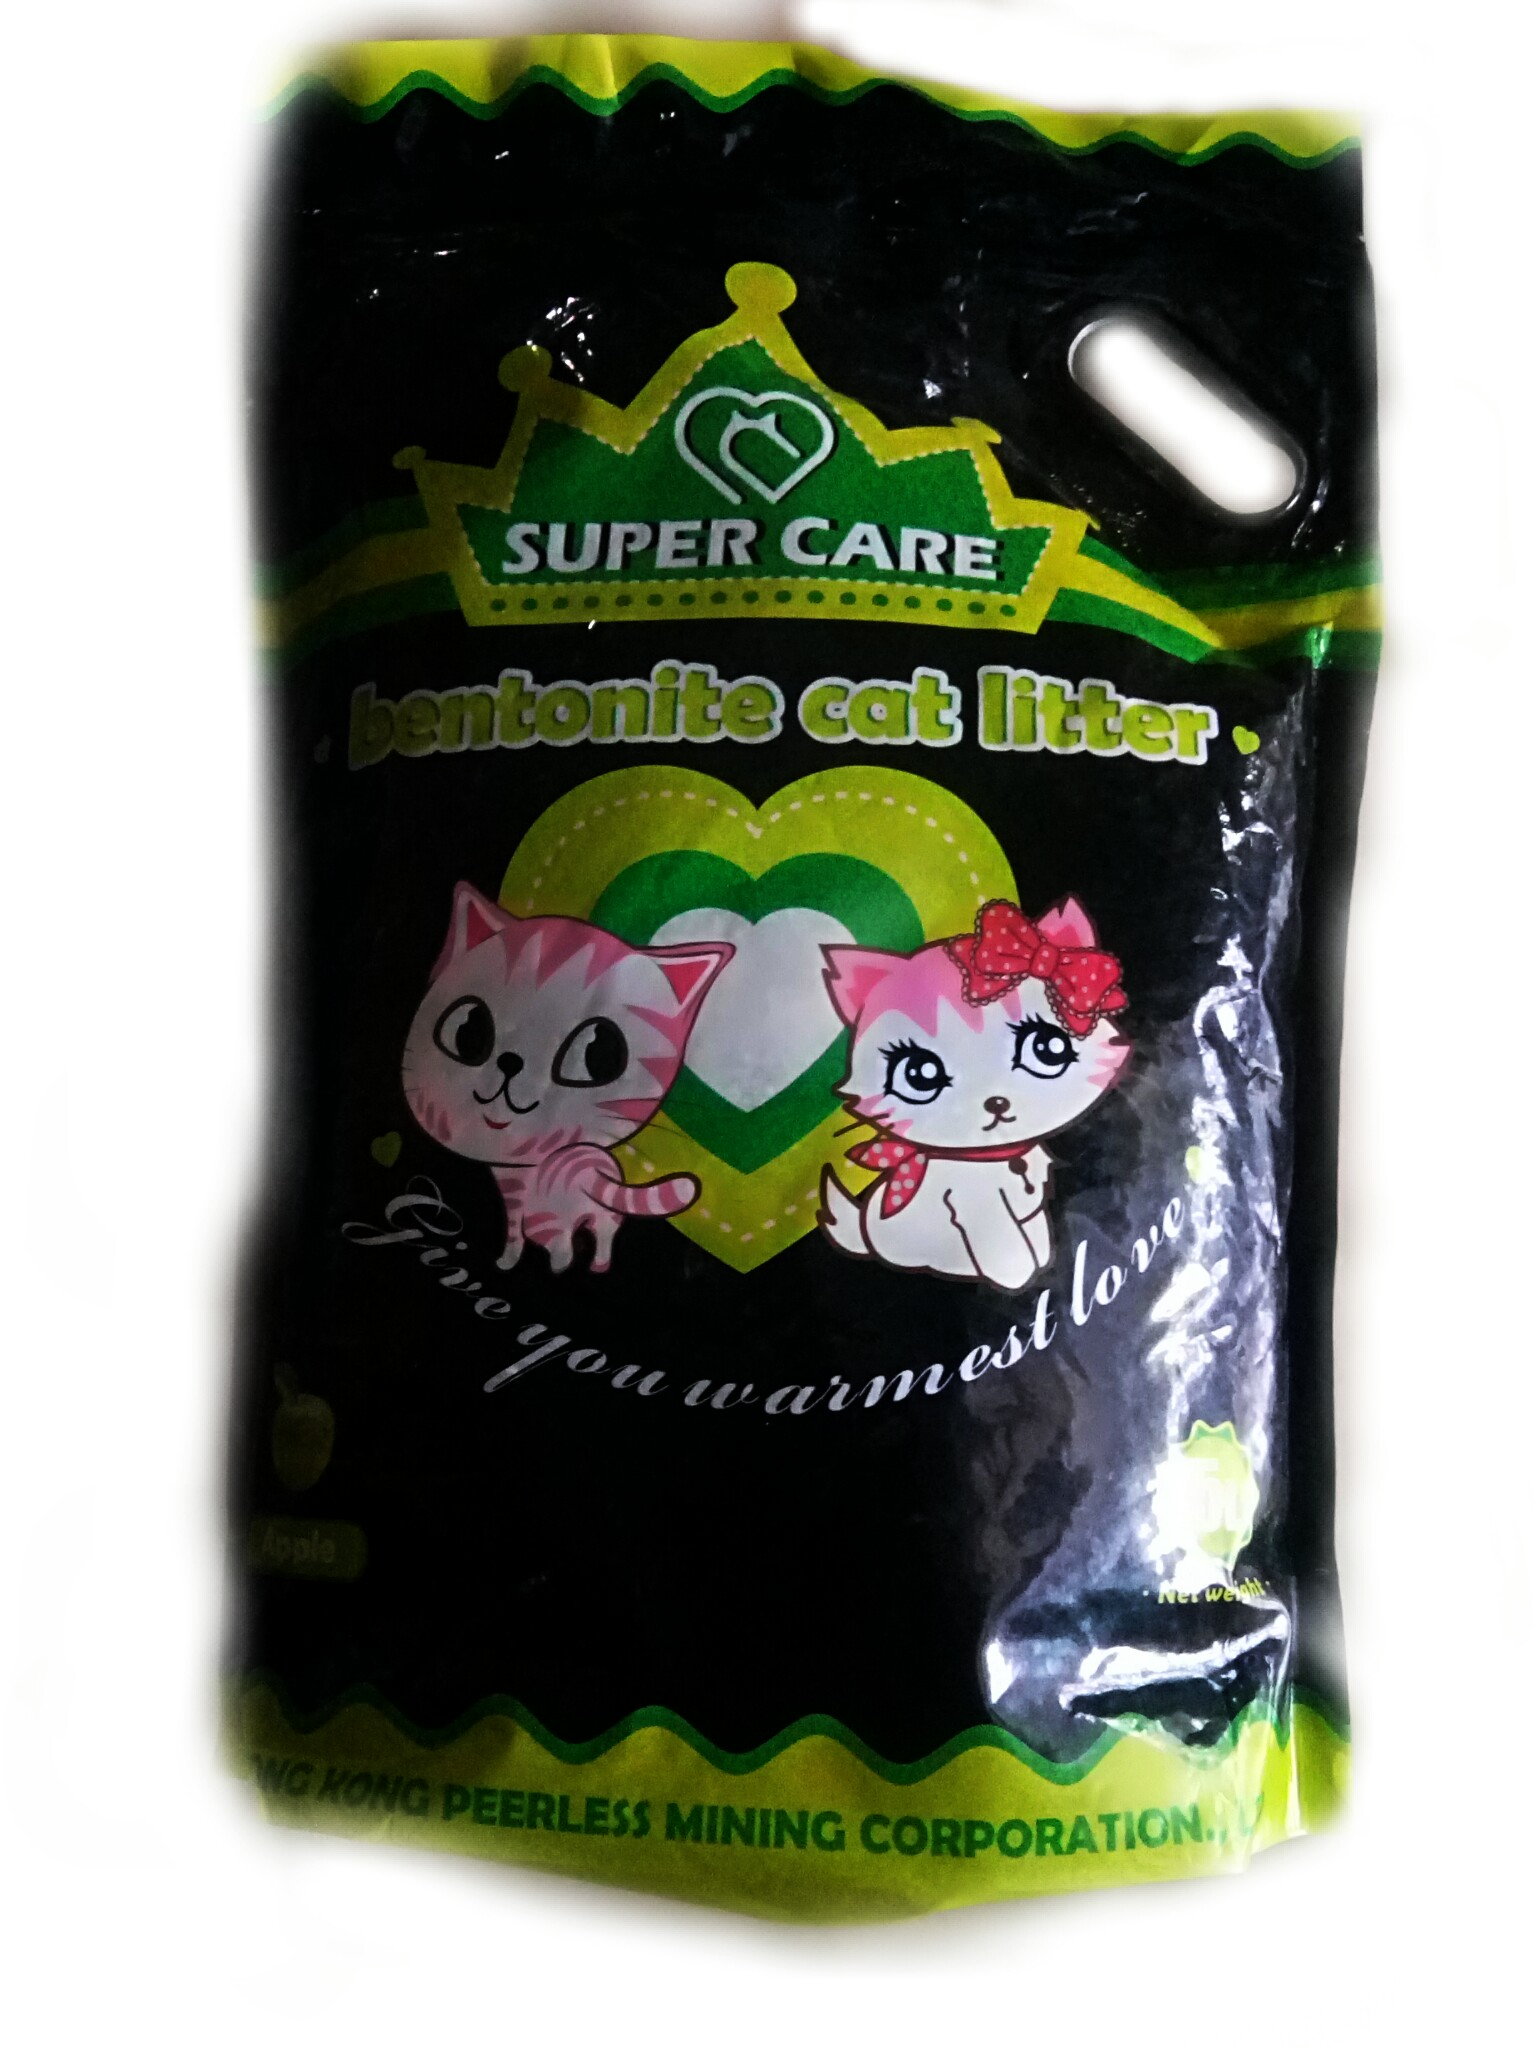 Super Care Bentonite Cat Litter Apple Flavor - 5L